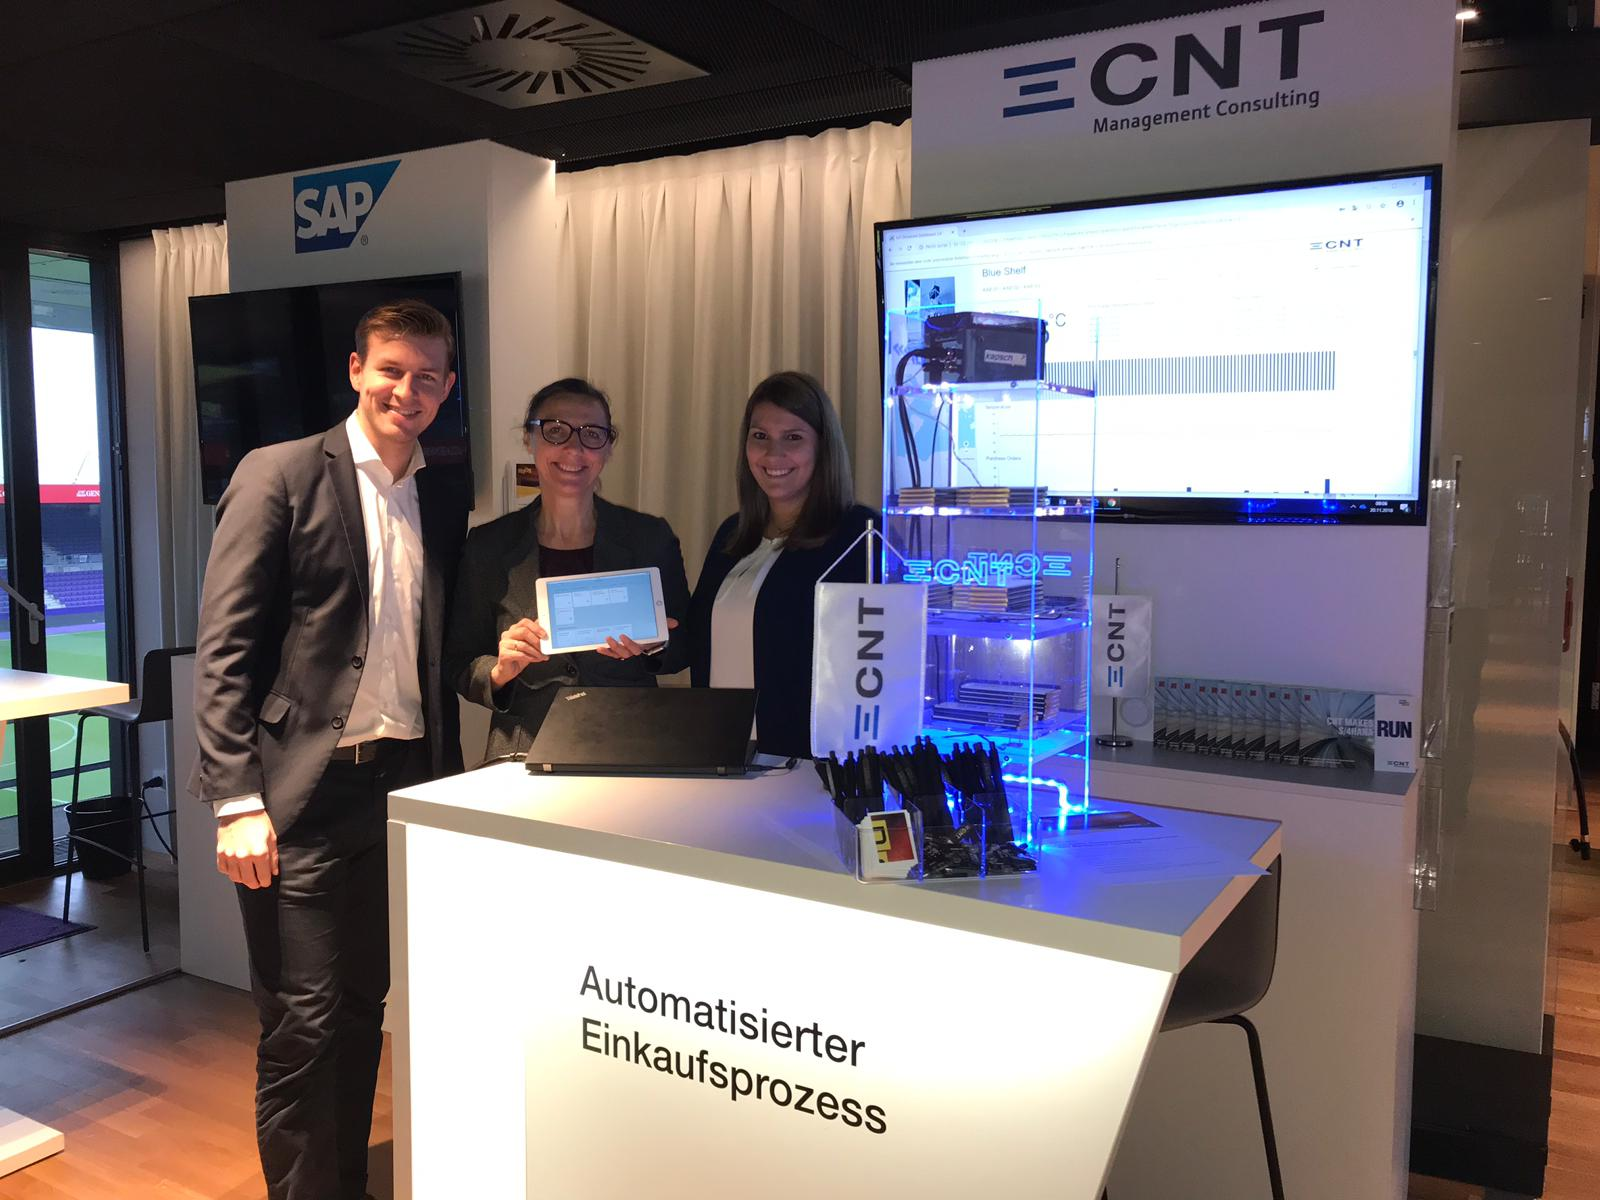 CNT bei der KAPSCH DEX 2018 am 20. November in der Generali Arena